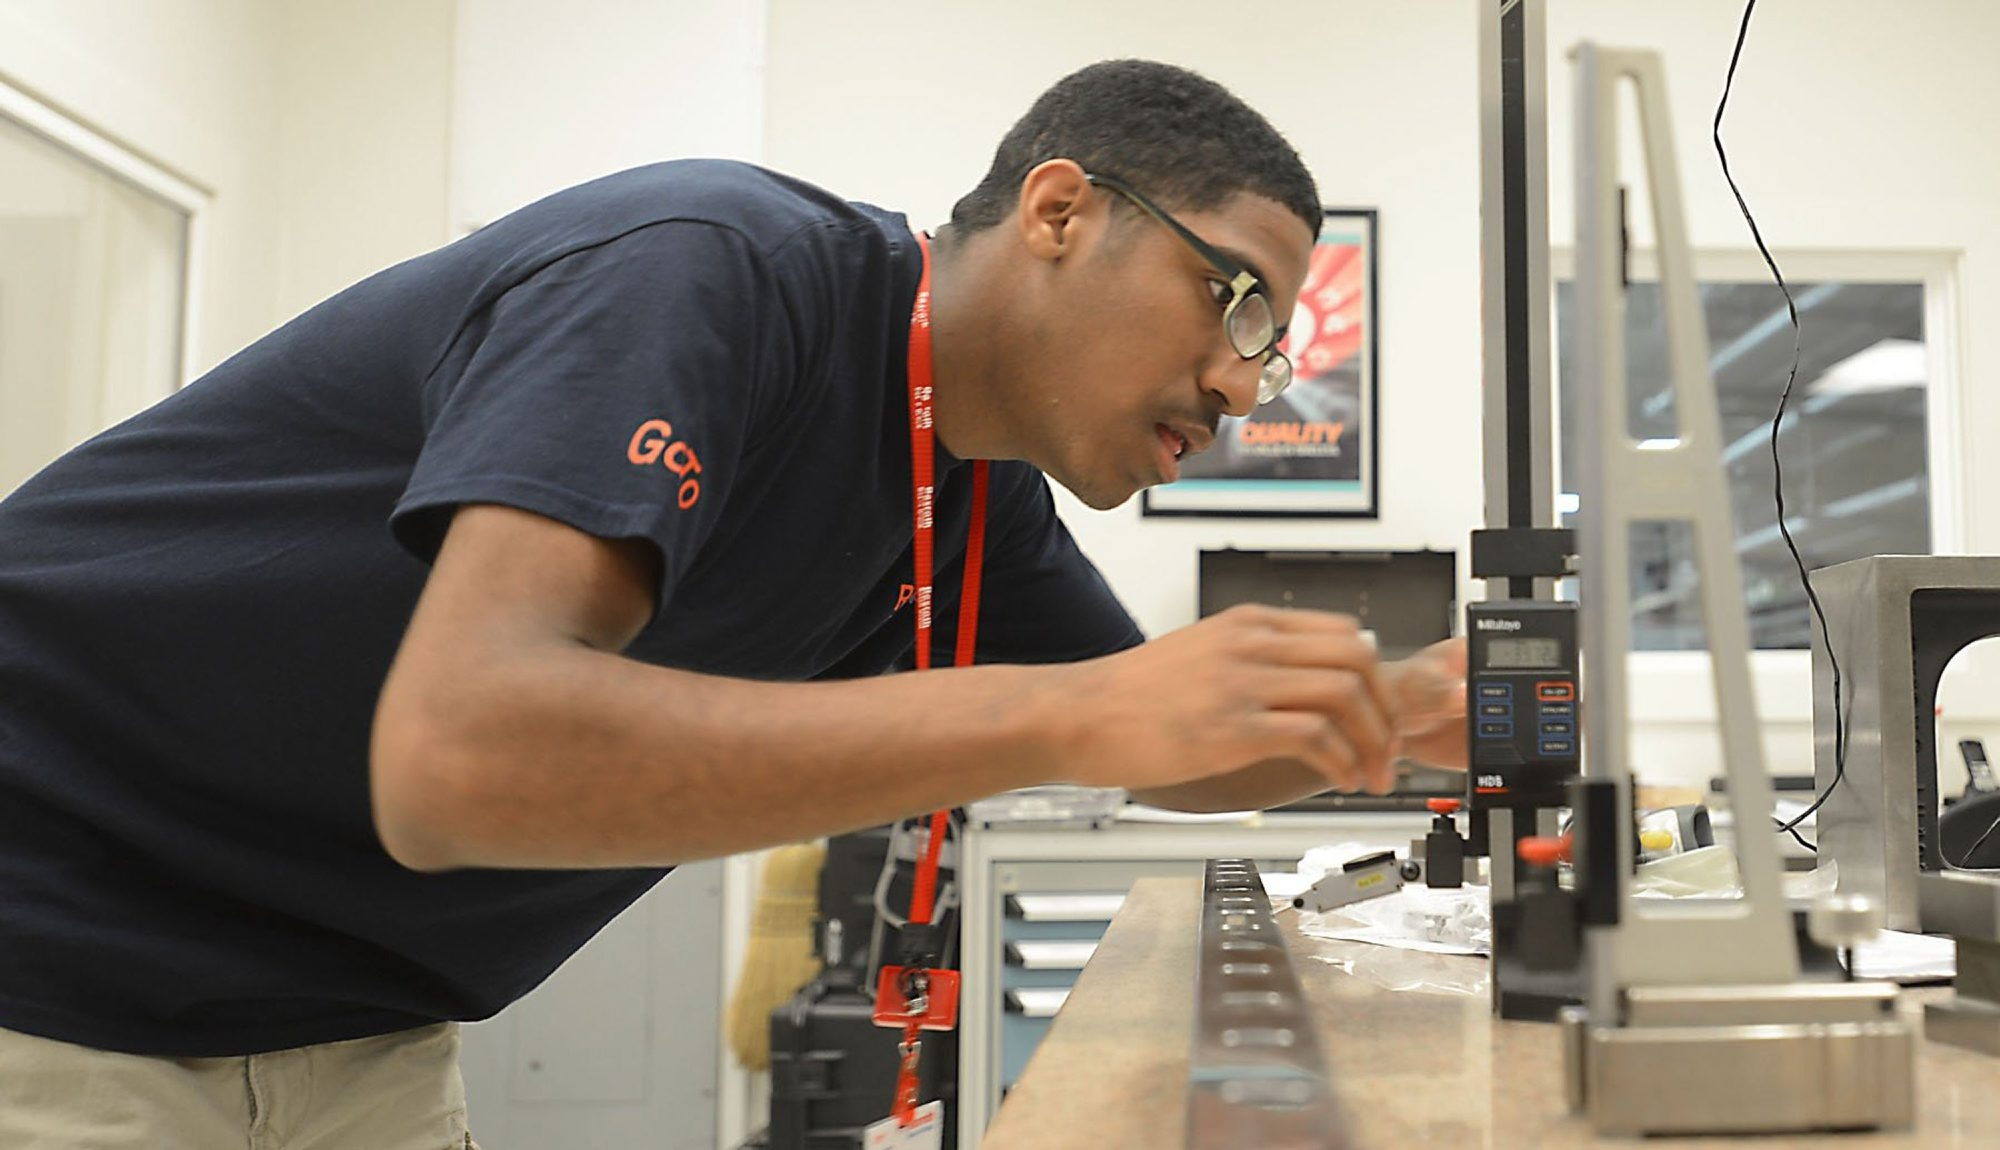 Olympic High student Maceo Ruckers-Shivers calibrates equipment at Bosch Rexroth in Charlotte, N.C.